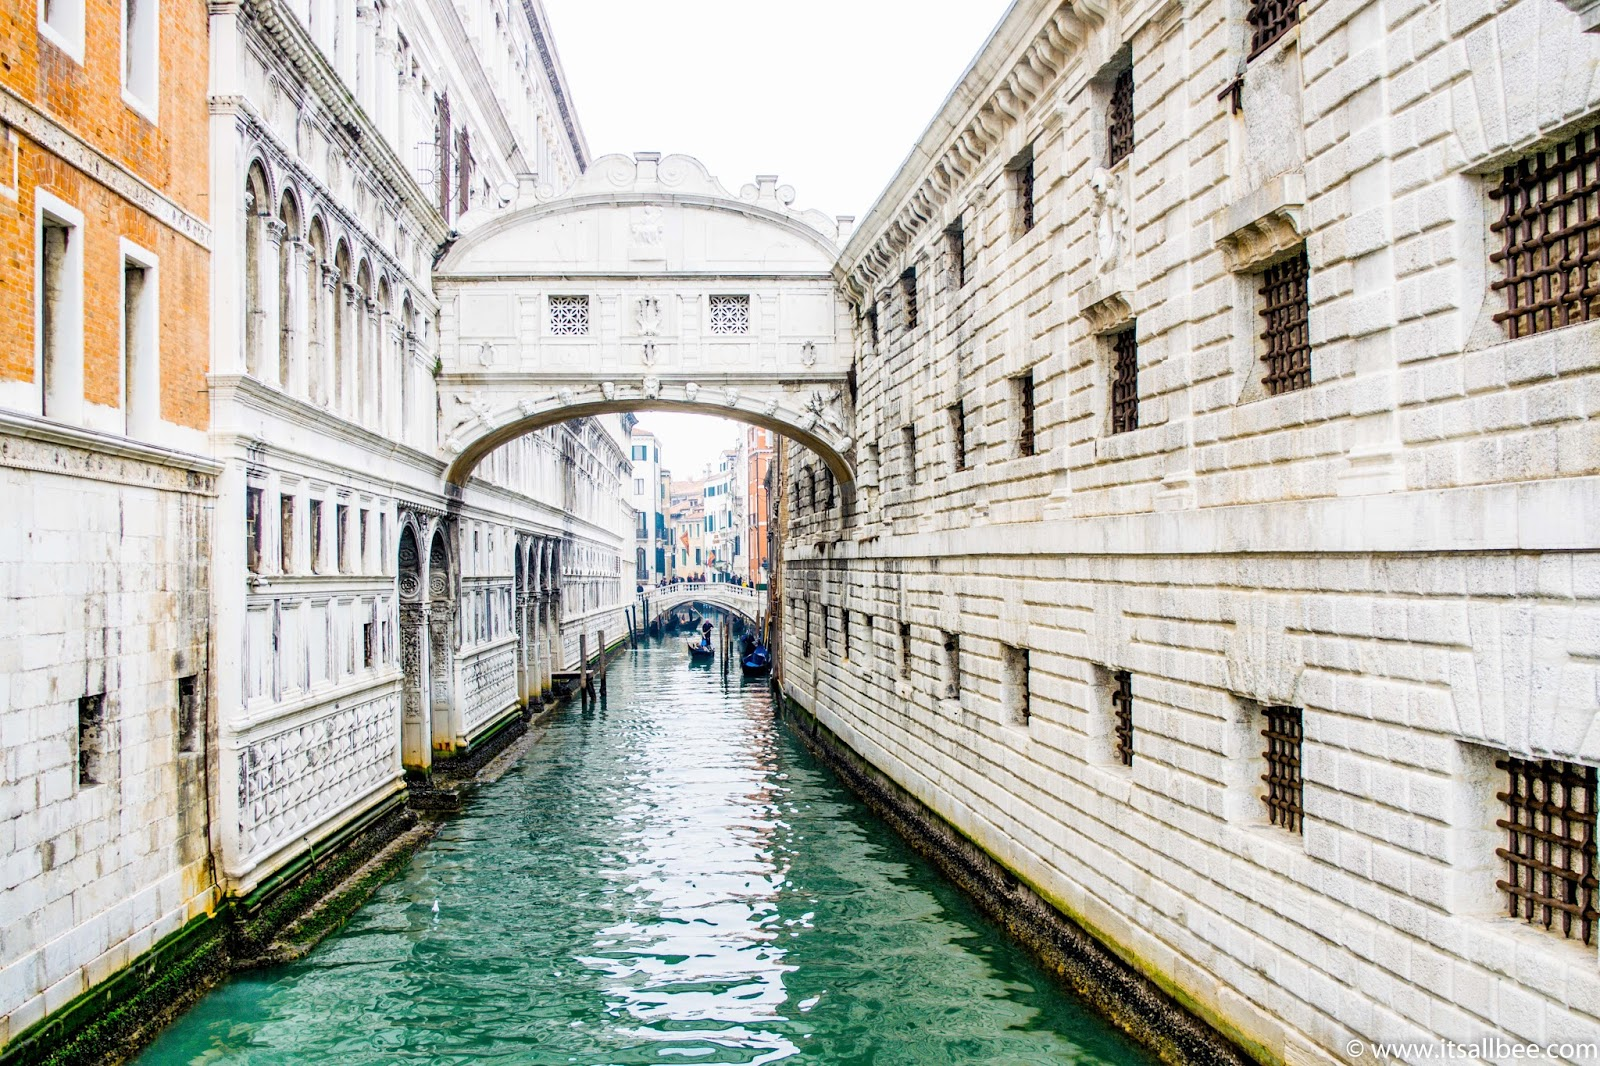 Venice In December | Bridge of sighs | The Best Venice Photography Spots